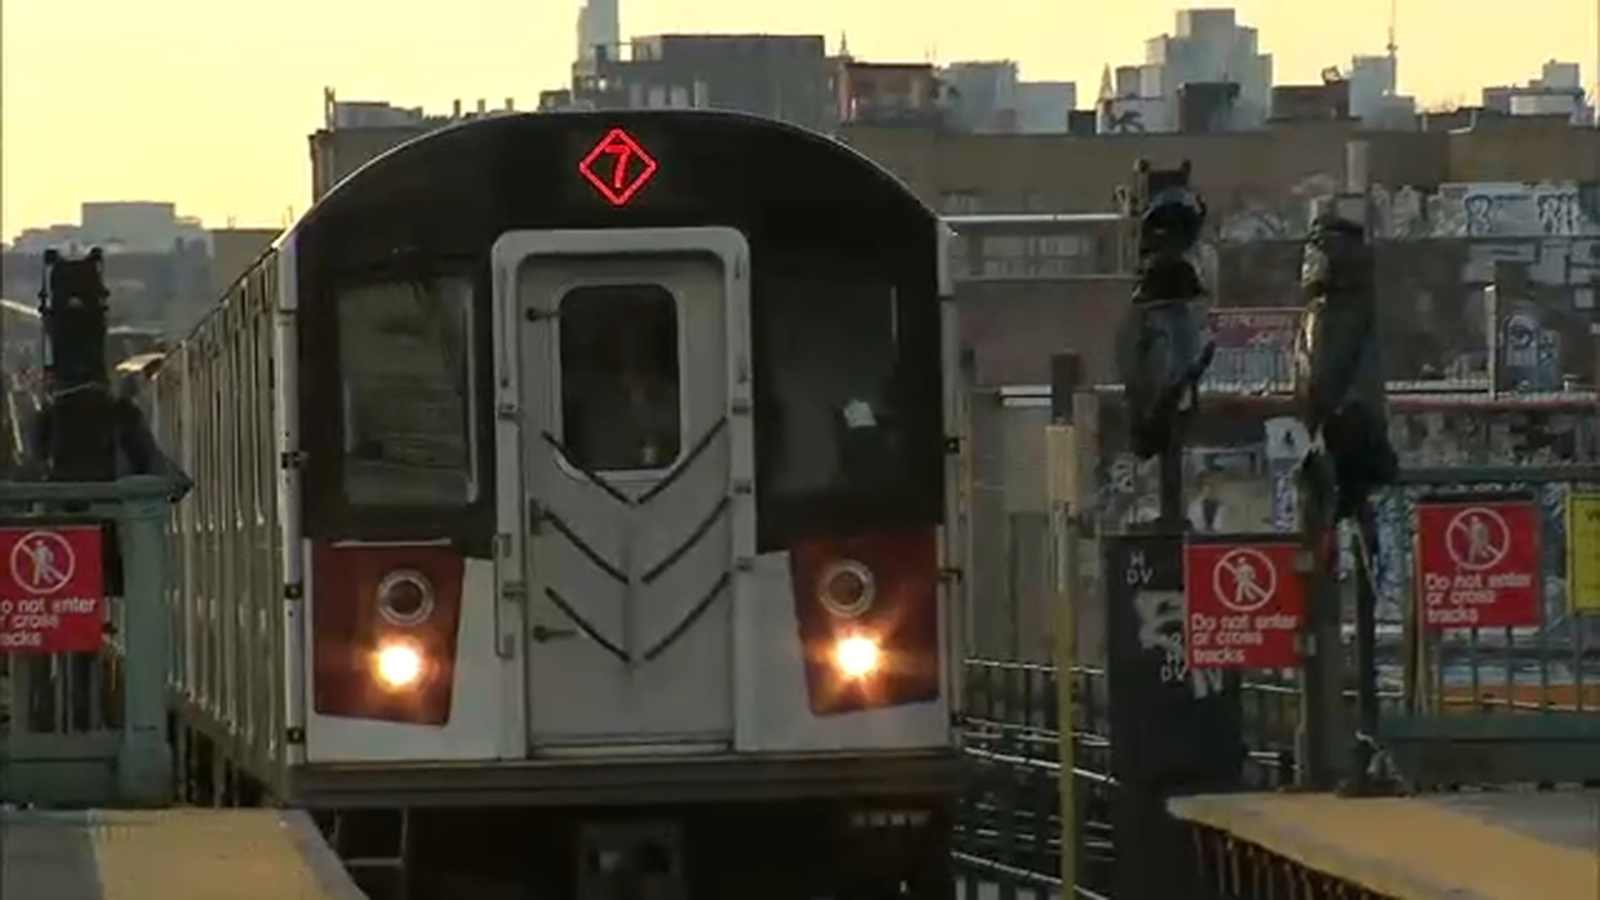 Transit President furious after snow and ice cause delays on the 7 train